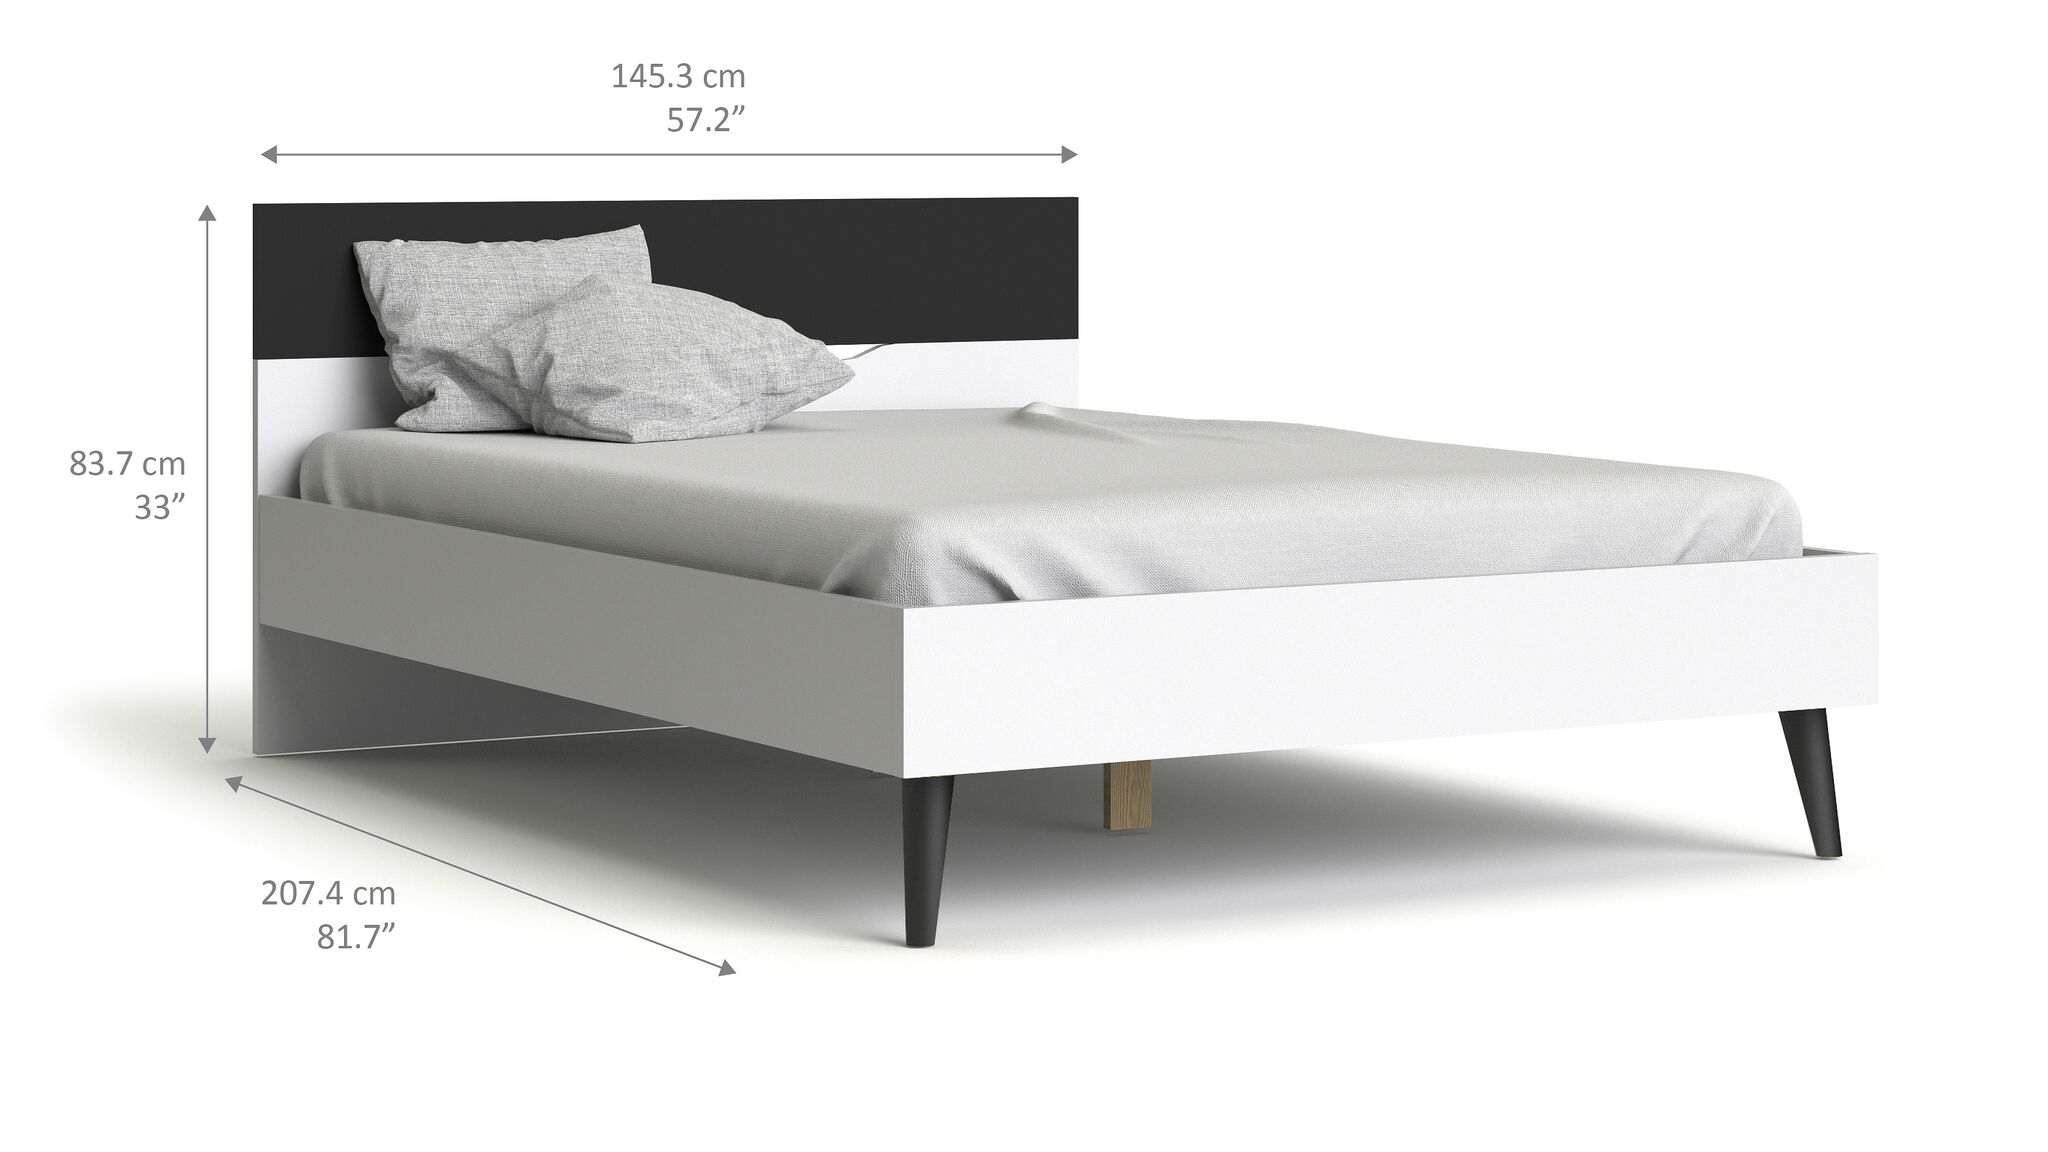 doppelbett napoli bettgestell ehebett bett schlafzimmer. Black Bedroom Furniture Sets. Home Design Ideas